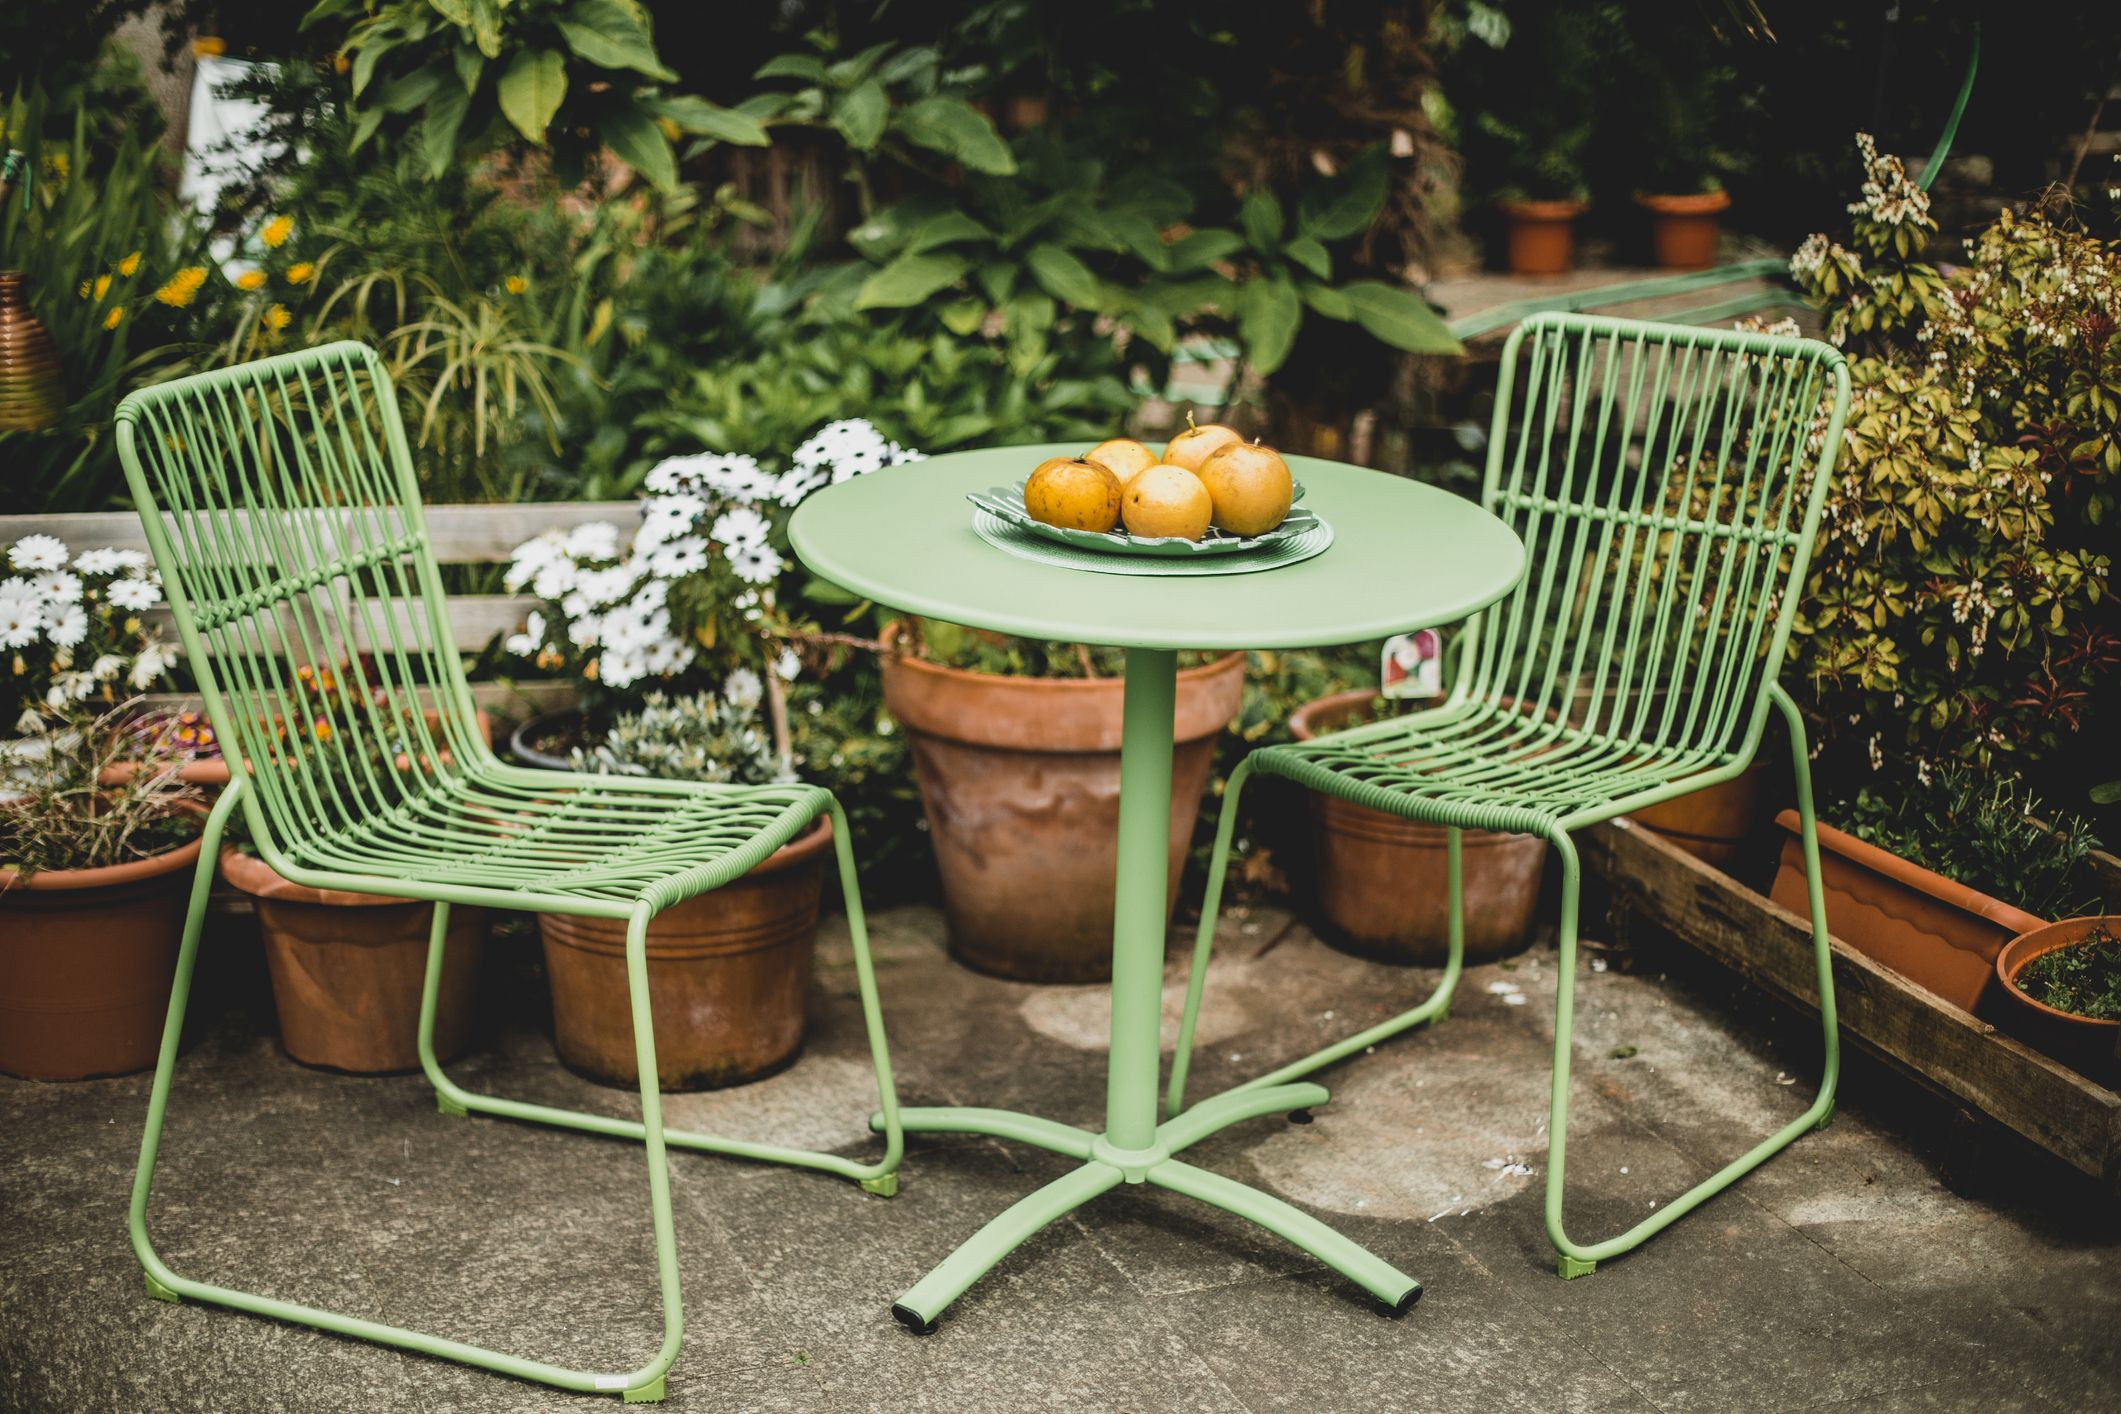 16 Garden Furniture Sets: Our Top Picks For 2020